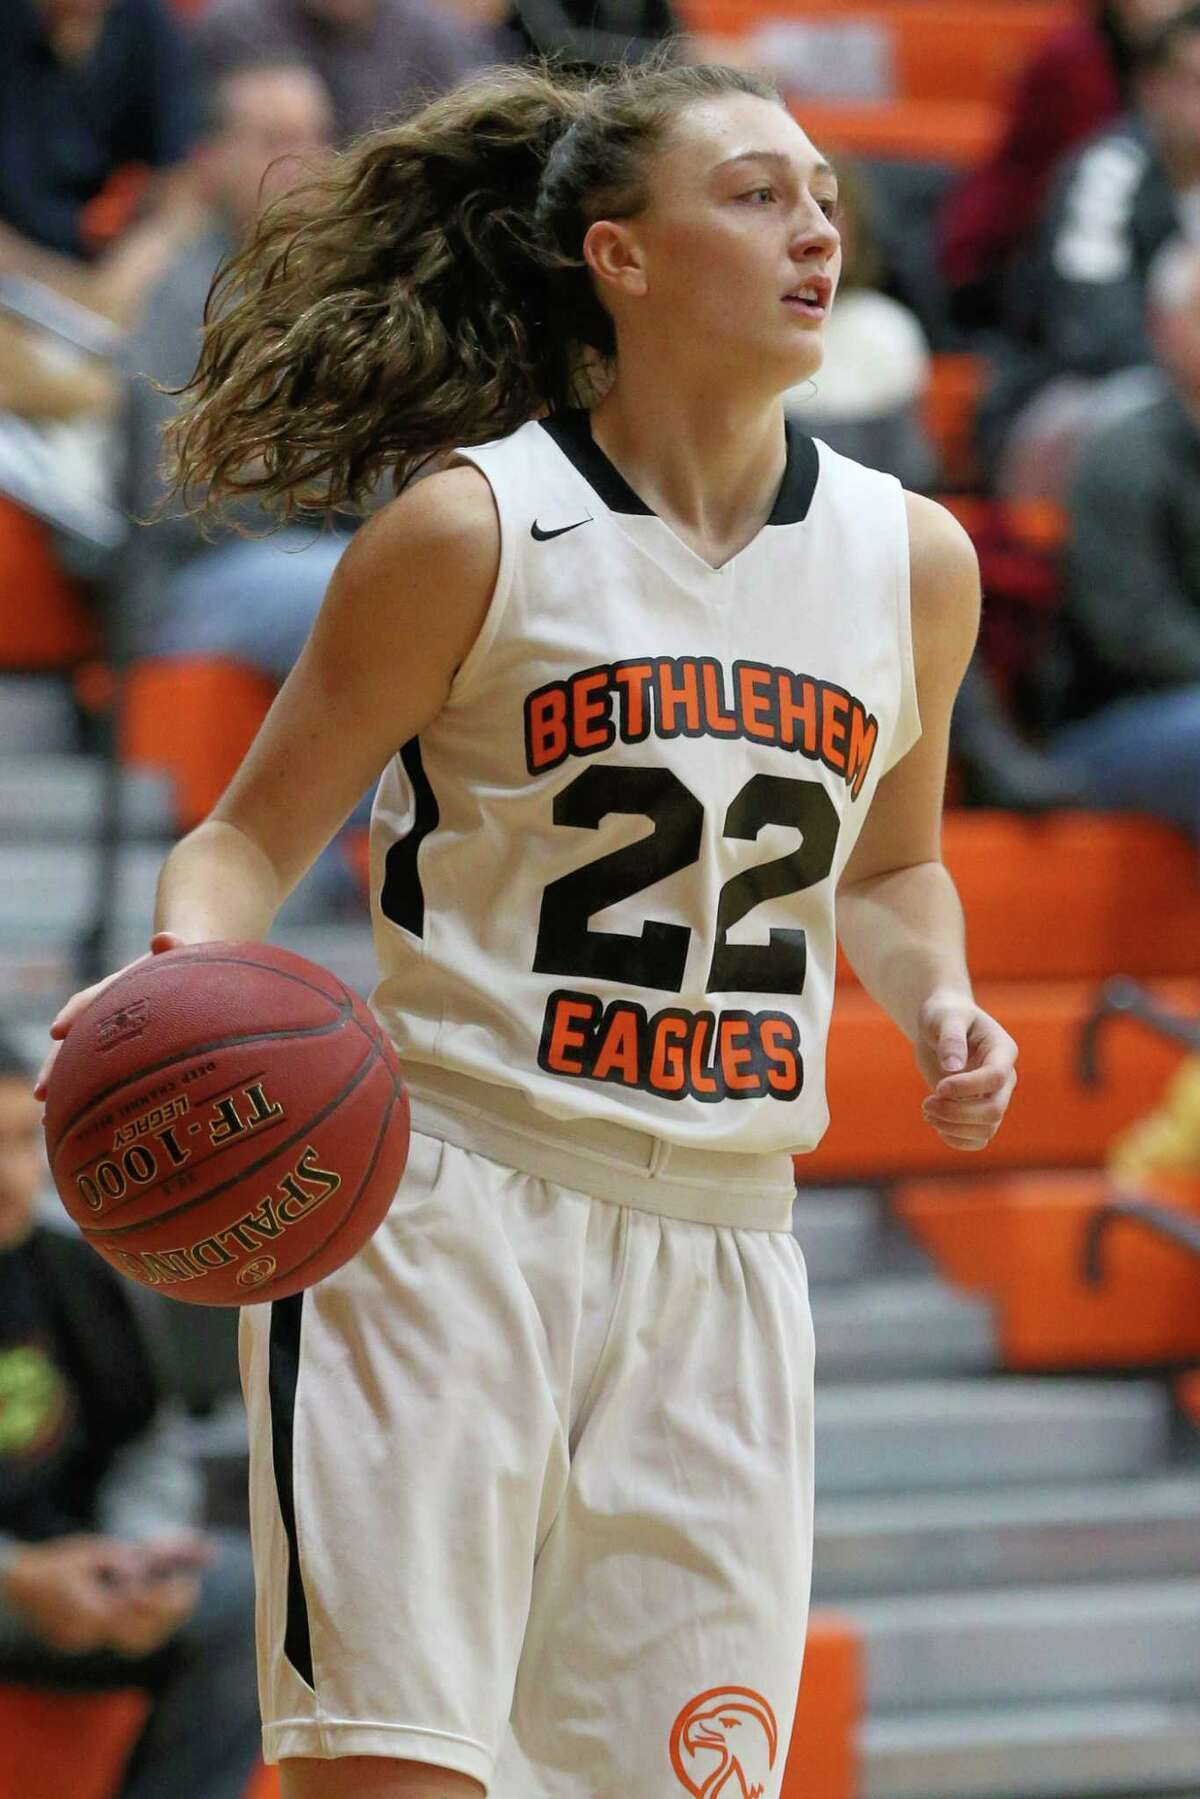 Maggie Kirby #22 of The Bethlehem Eagles on 12/21/17 in Delmar NY. Photo: Robert Dungan (Special to the Times Union) ORG XMIT: MER2017082023255053